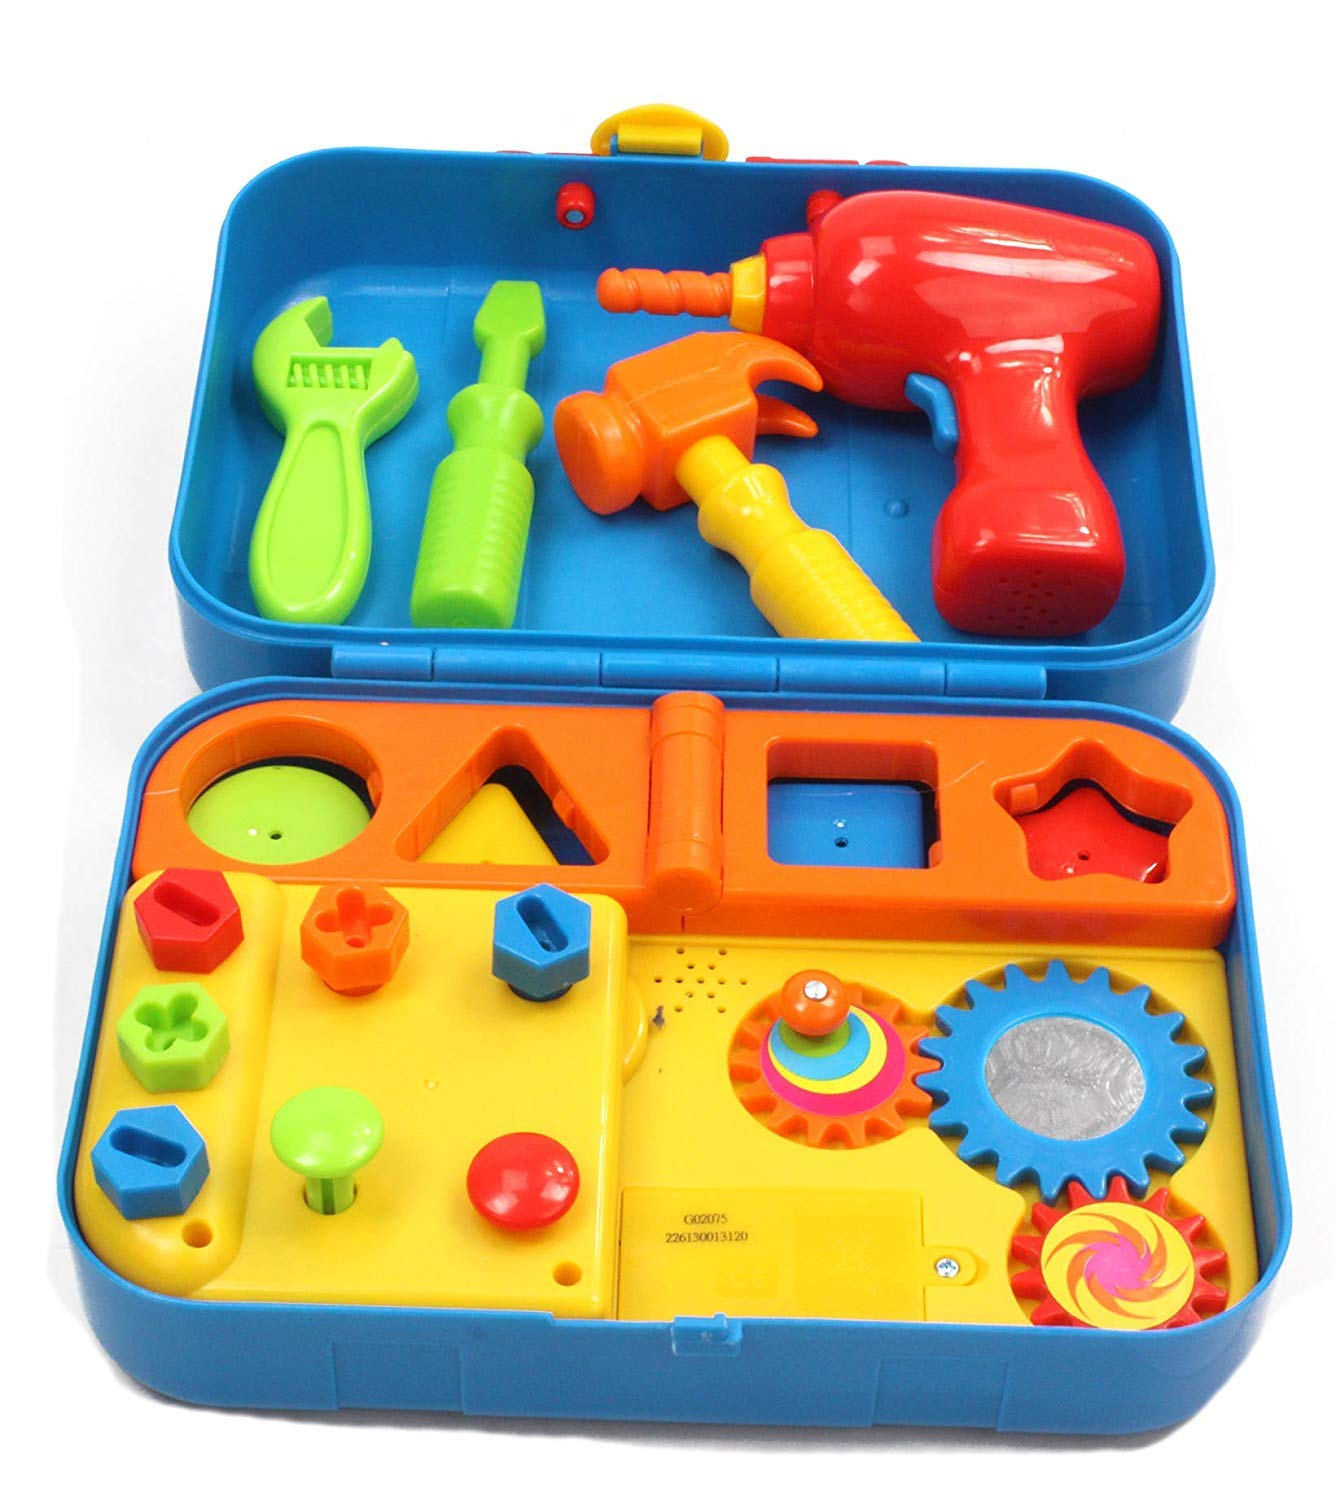 Kidoozie Cool Tools Activity Set - Pretend Play, Shape Sorting, and Fine Motor Activities with Fun Sounds - 18+ Months by Kidoozie